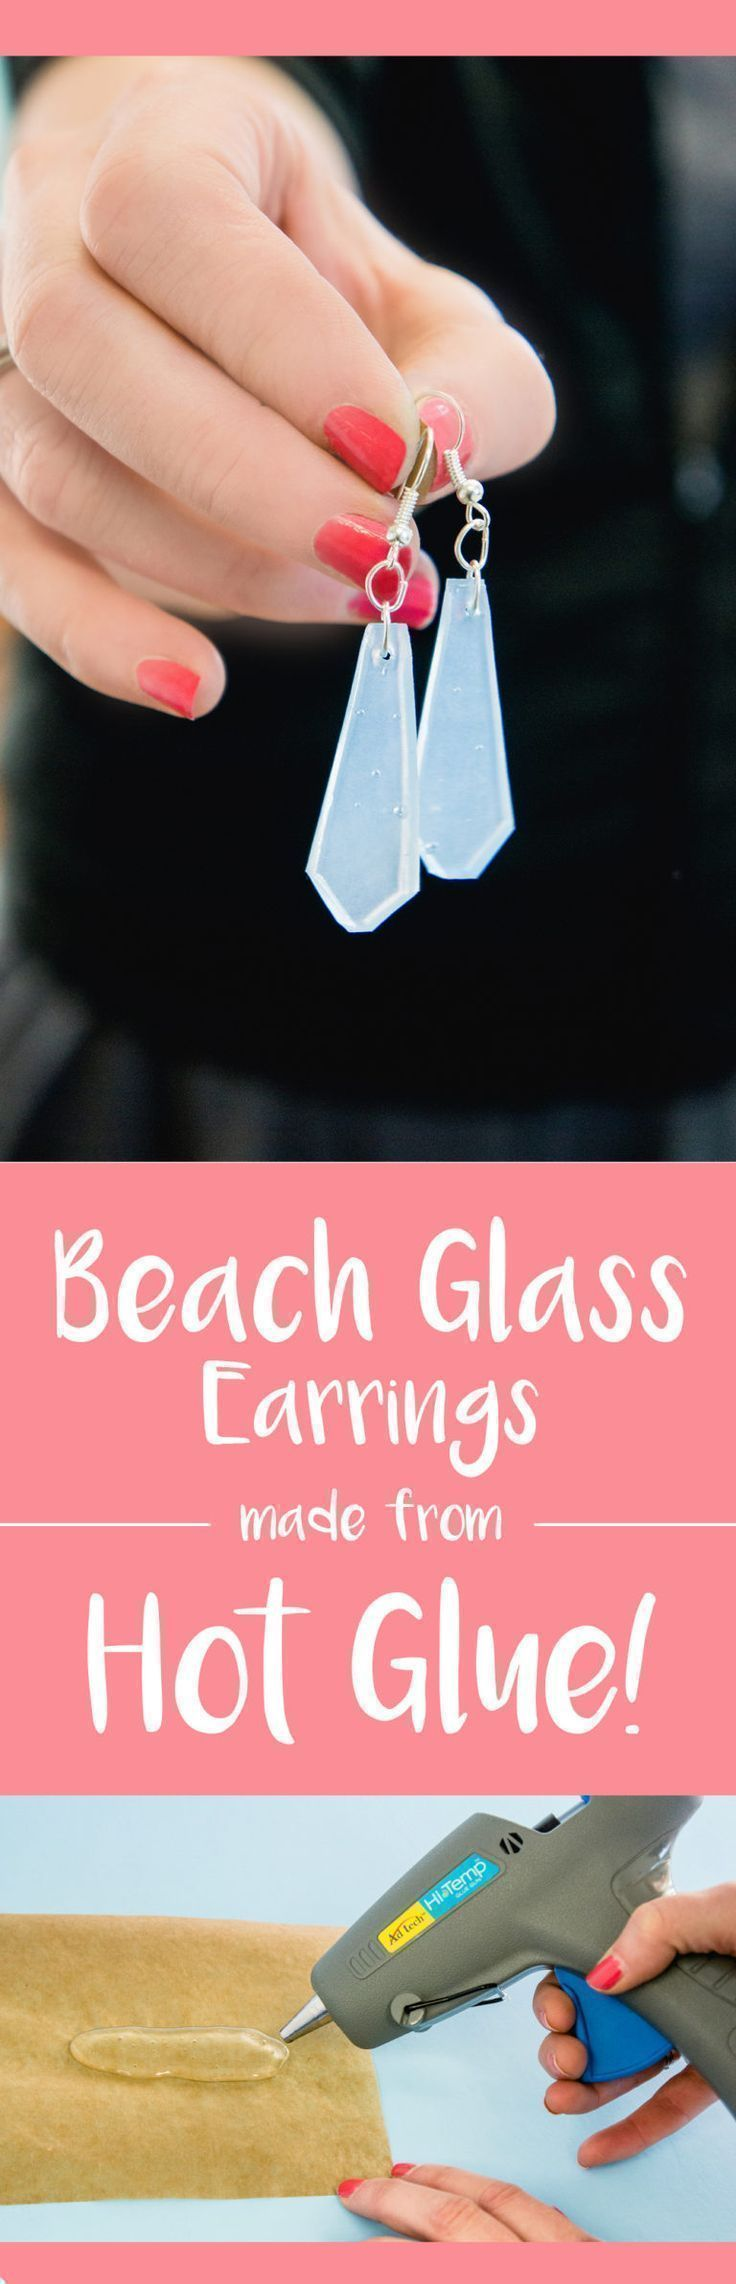 Do you LOVE sea glass? Make these super-realistic DIY Beach Glass earrings out of hot glue! Great craft for tweens, teens, girl scouts, seniors... Beach glass jewelry is lightweight and fun to make with your glue gun.  #thisishotglue #glueasamedium #adtech  http://www.thestudio.blog/diy-hot-glue-sea-glass-earrings-thisishotglue/ #earringsdiy #seaglasscrafts #seaglassjewelry #seaglassdiy